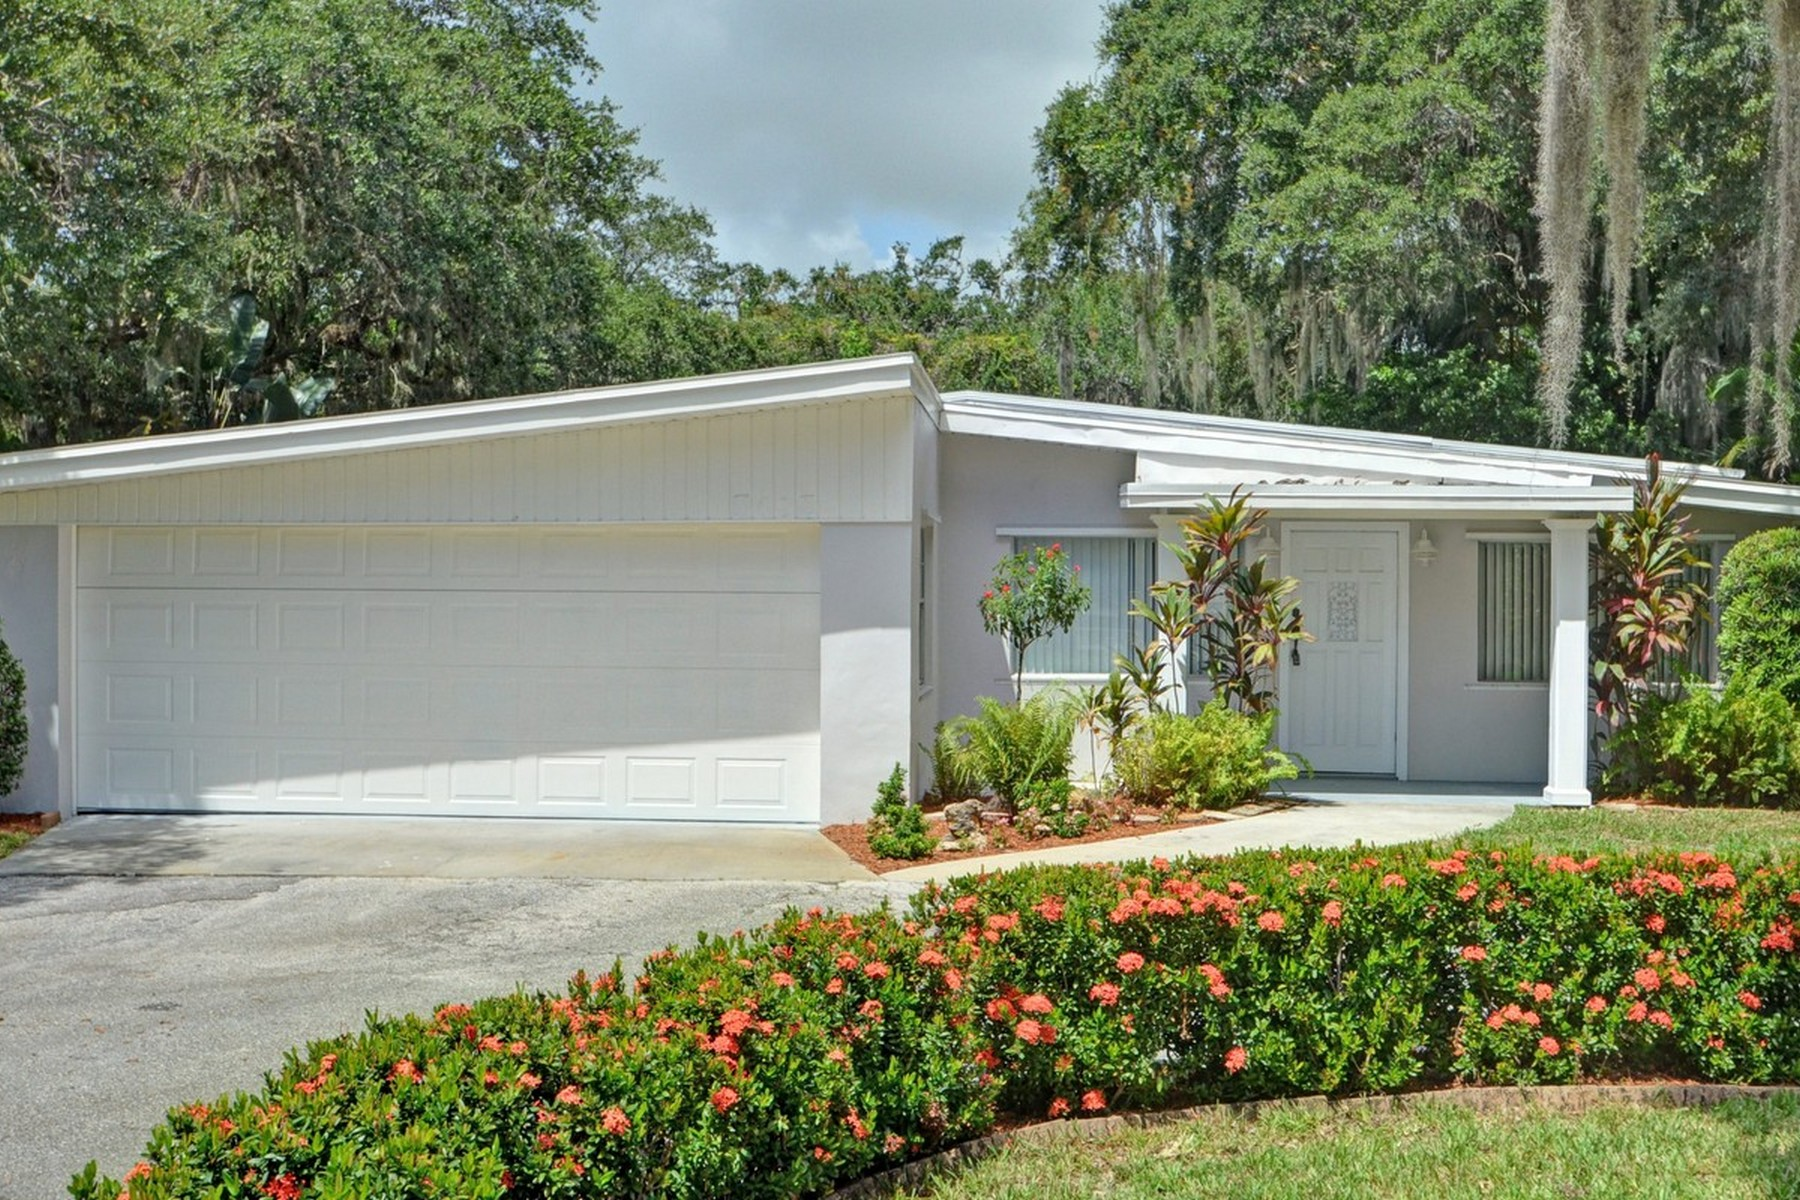 Single Family Home for Sale at Central Beach Home 3615 Indian River Drive Vero Beach, Florida, 32963 United States